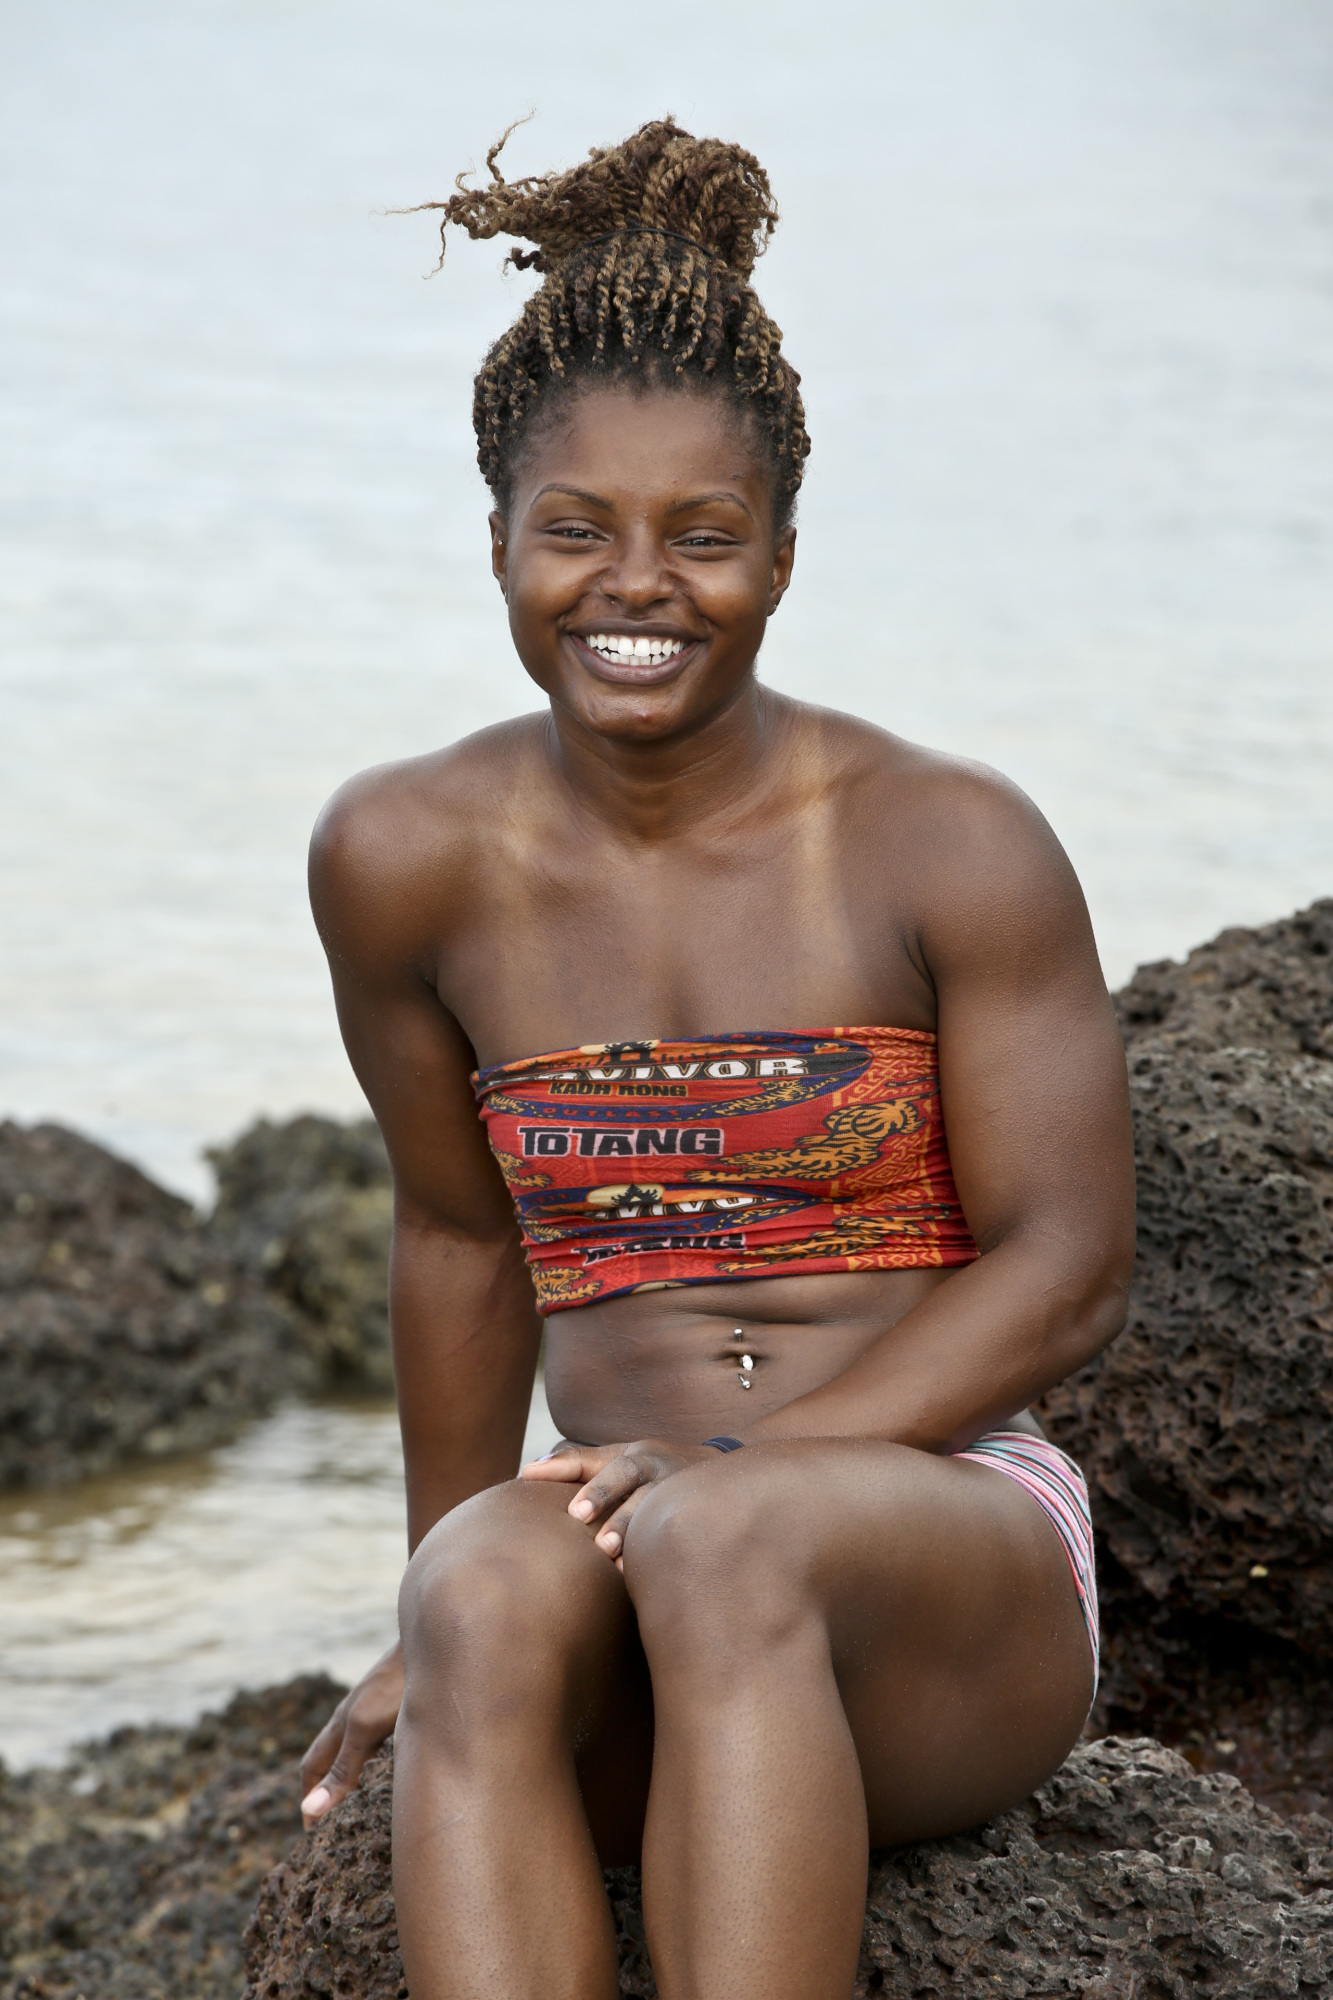 """""""I'm a Mental Giant"""" --Cydney Gillon during the new season of SURVIVOR KAOH: RONG -- Brains vs. Brawn vs. Beauty. The show premieres with a special 90-minute episode, Wednesday, February 17 (8:00-9:30 PM, ET/PT) on the CBS Television Network. Photo: Monty Brinton /CBS Entertainment �©2016 CBS Broadcasting, Inc. All Rights. Reserved."""